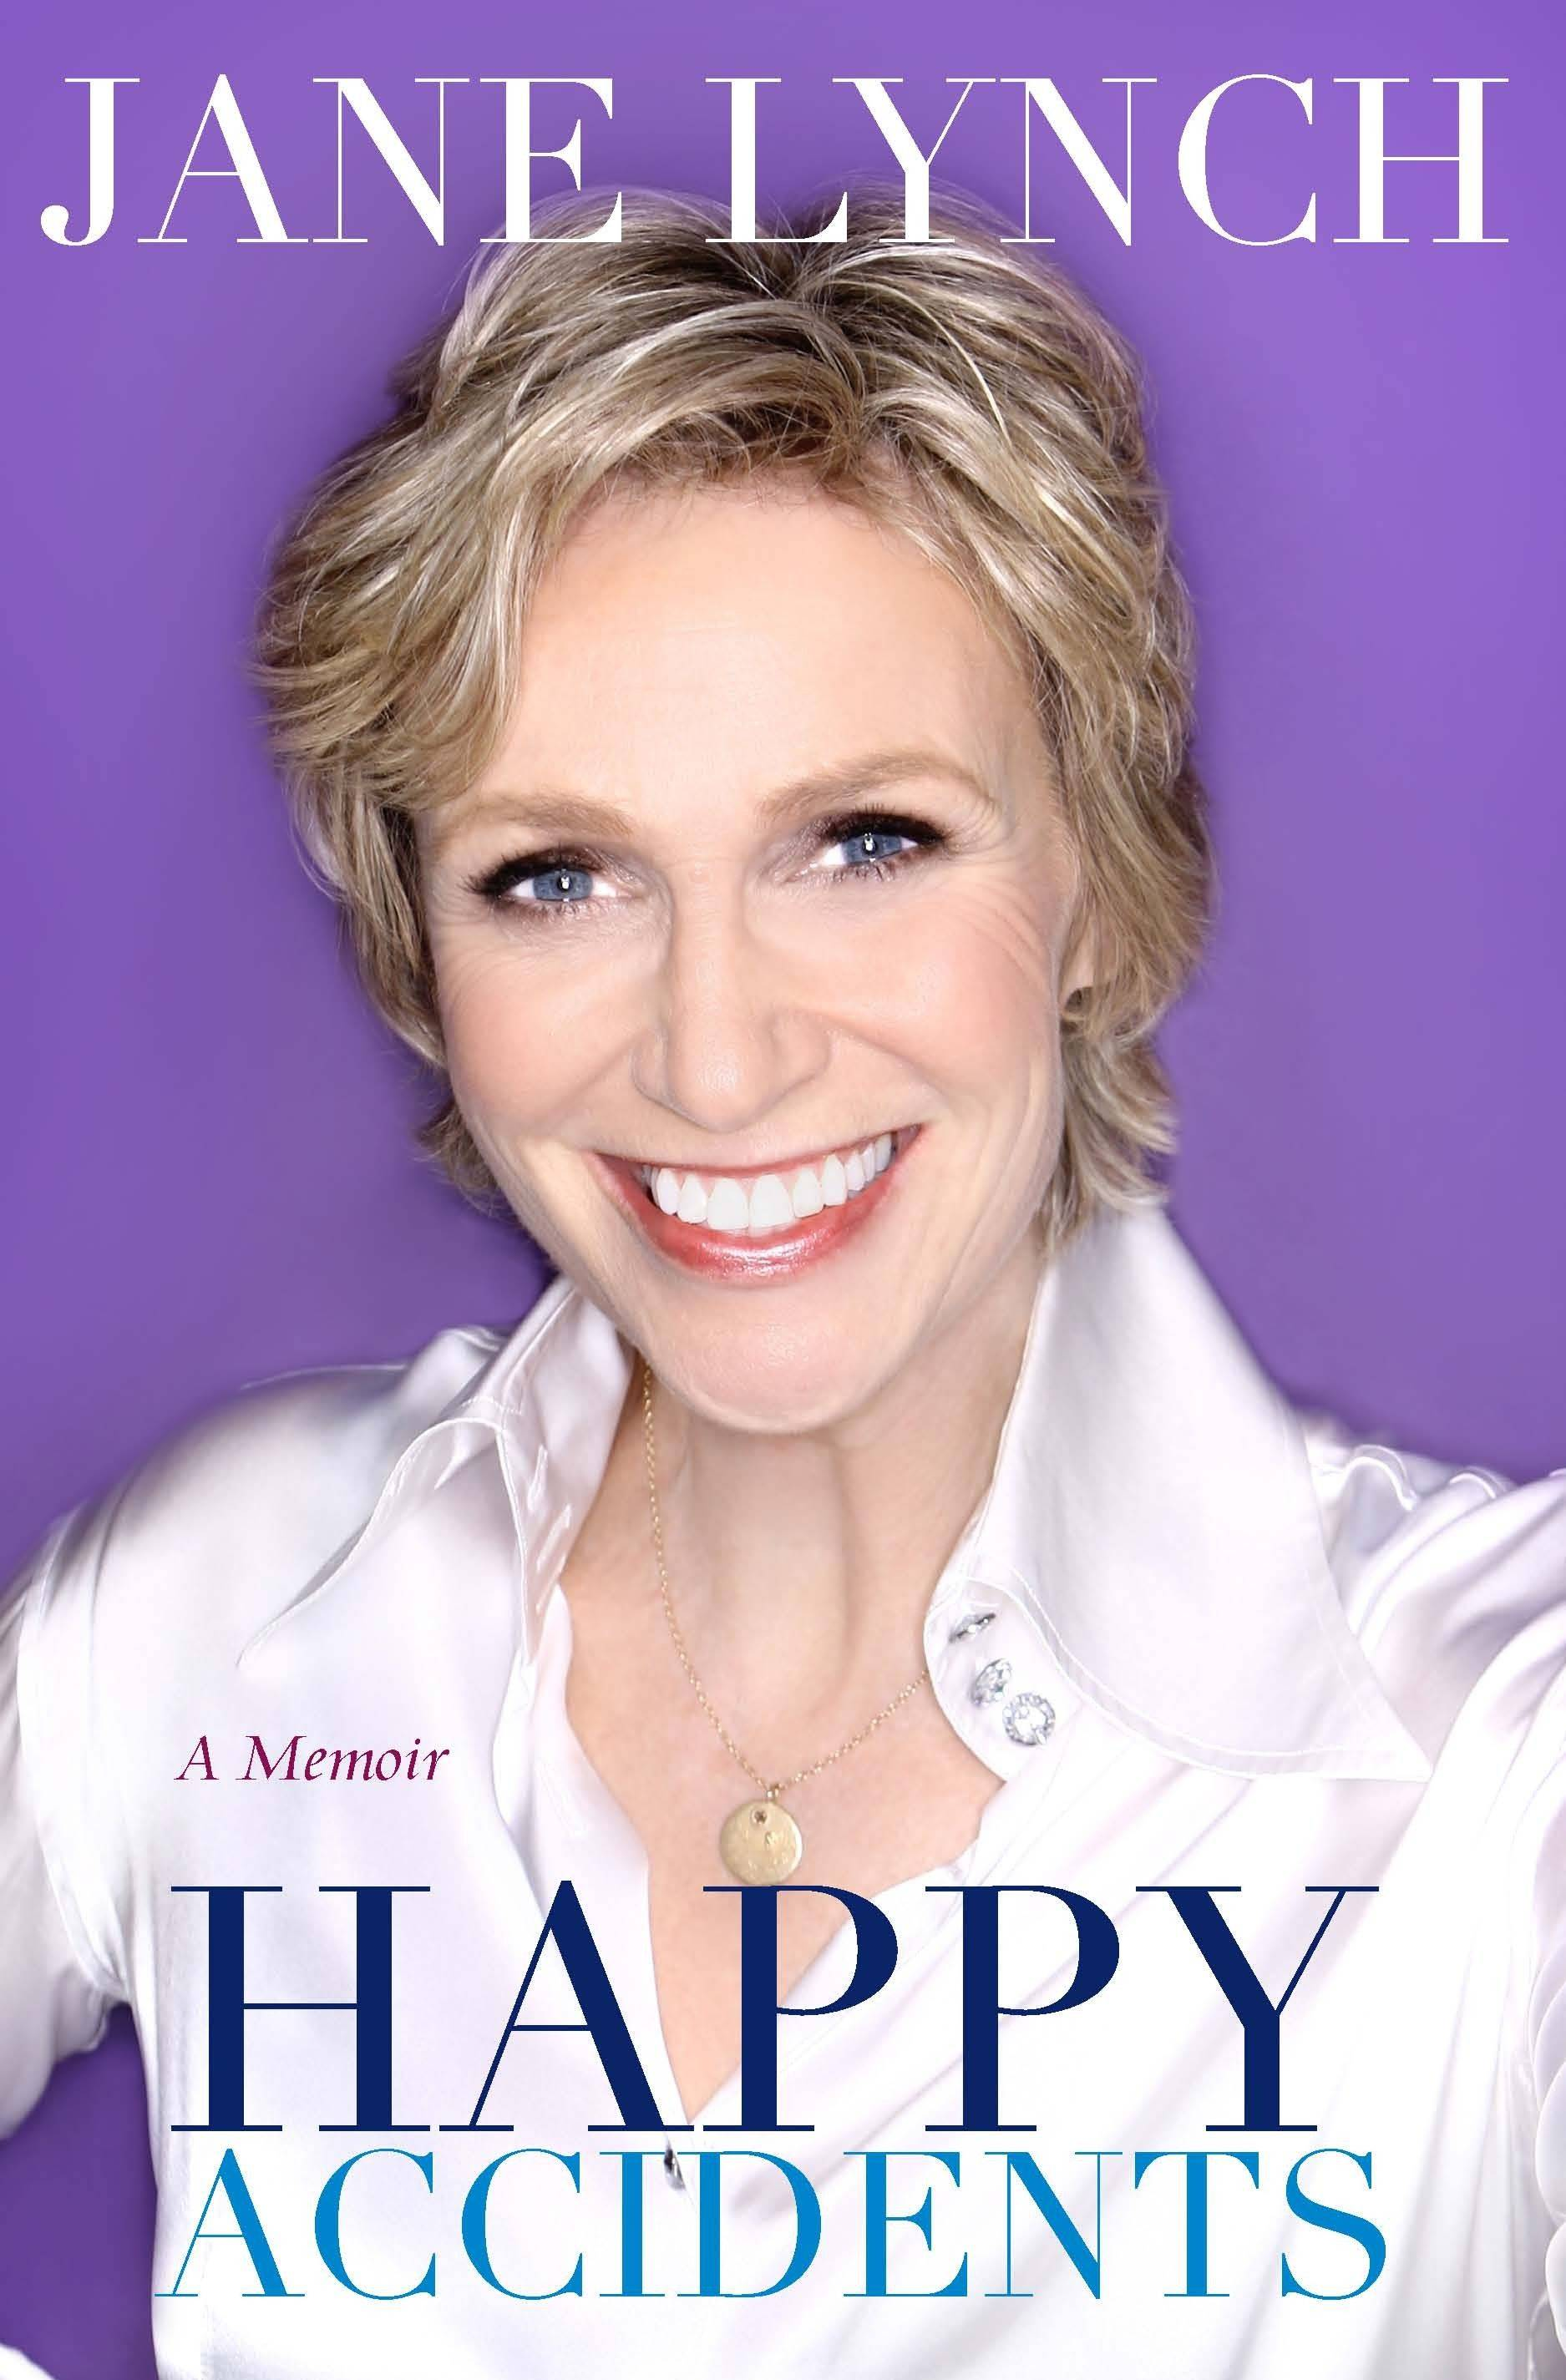 """Happy Accidents"" by Jane Lynch"